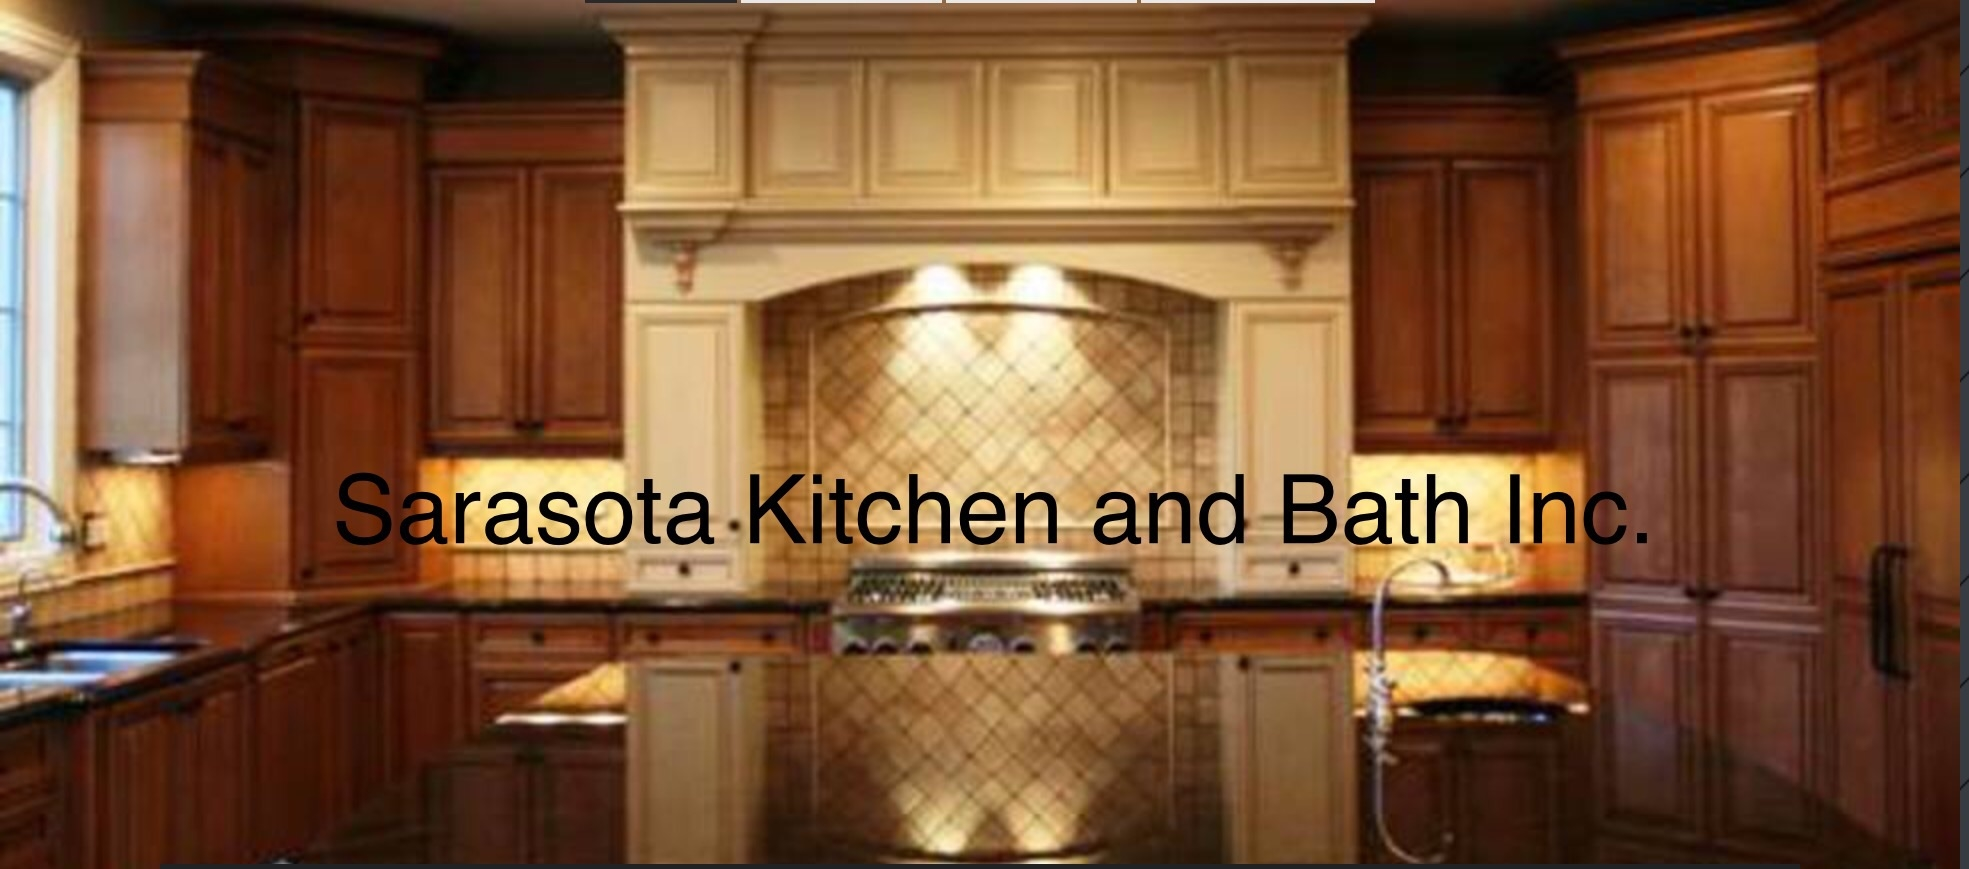 Sarasota Kitchen and Bath Inc.